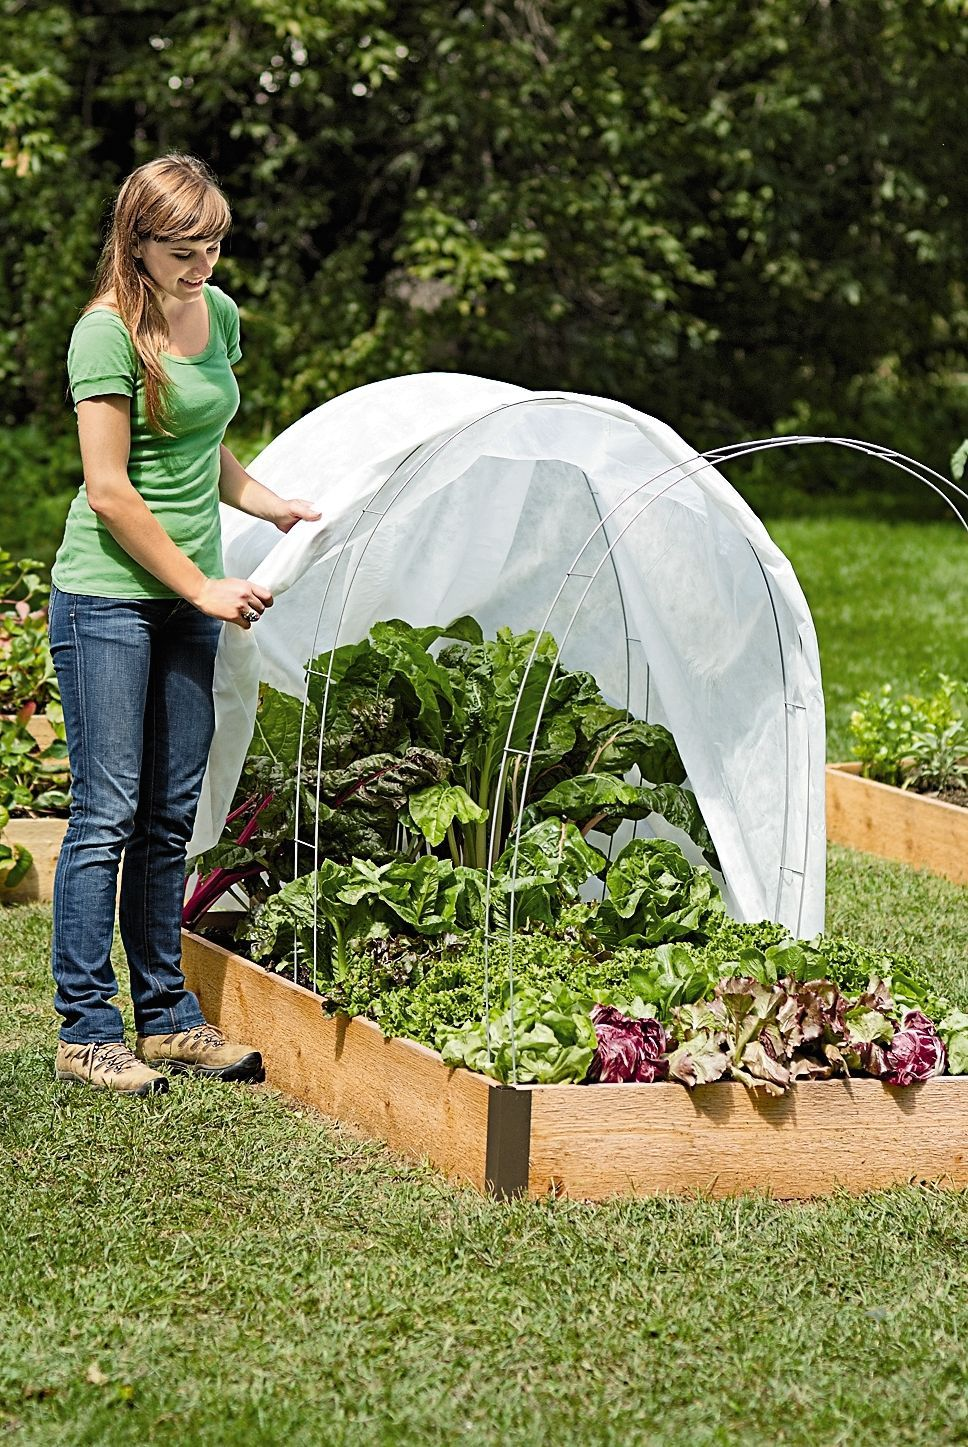 Super Hoops for Garden Row Covers and Frost | Gardener's Supply